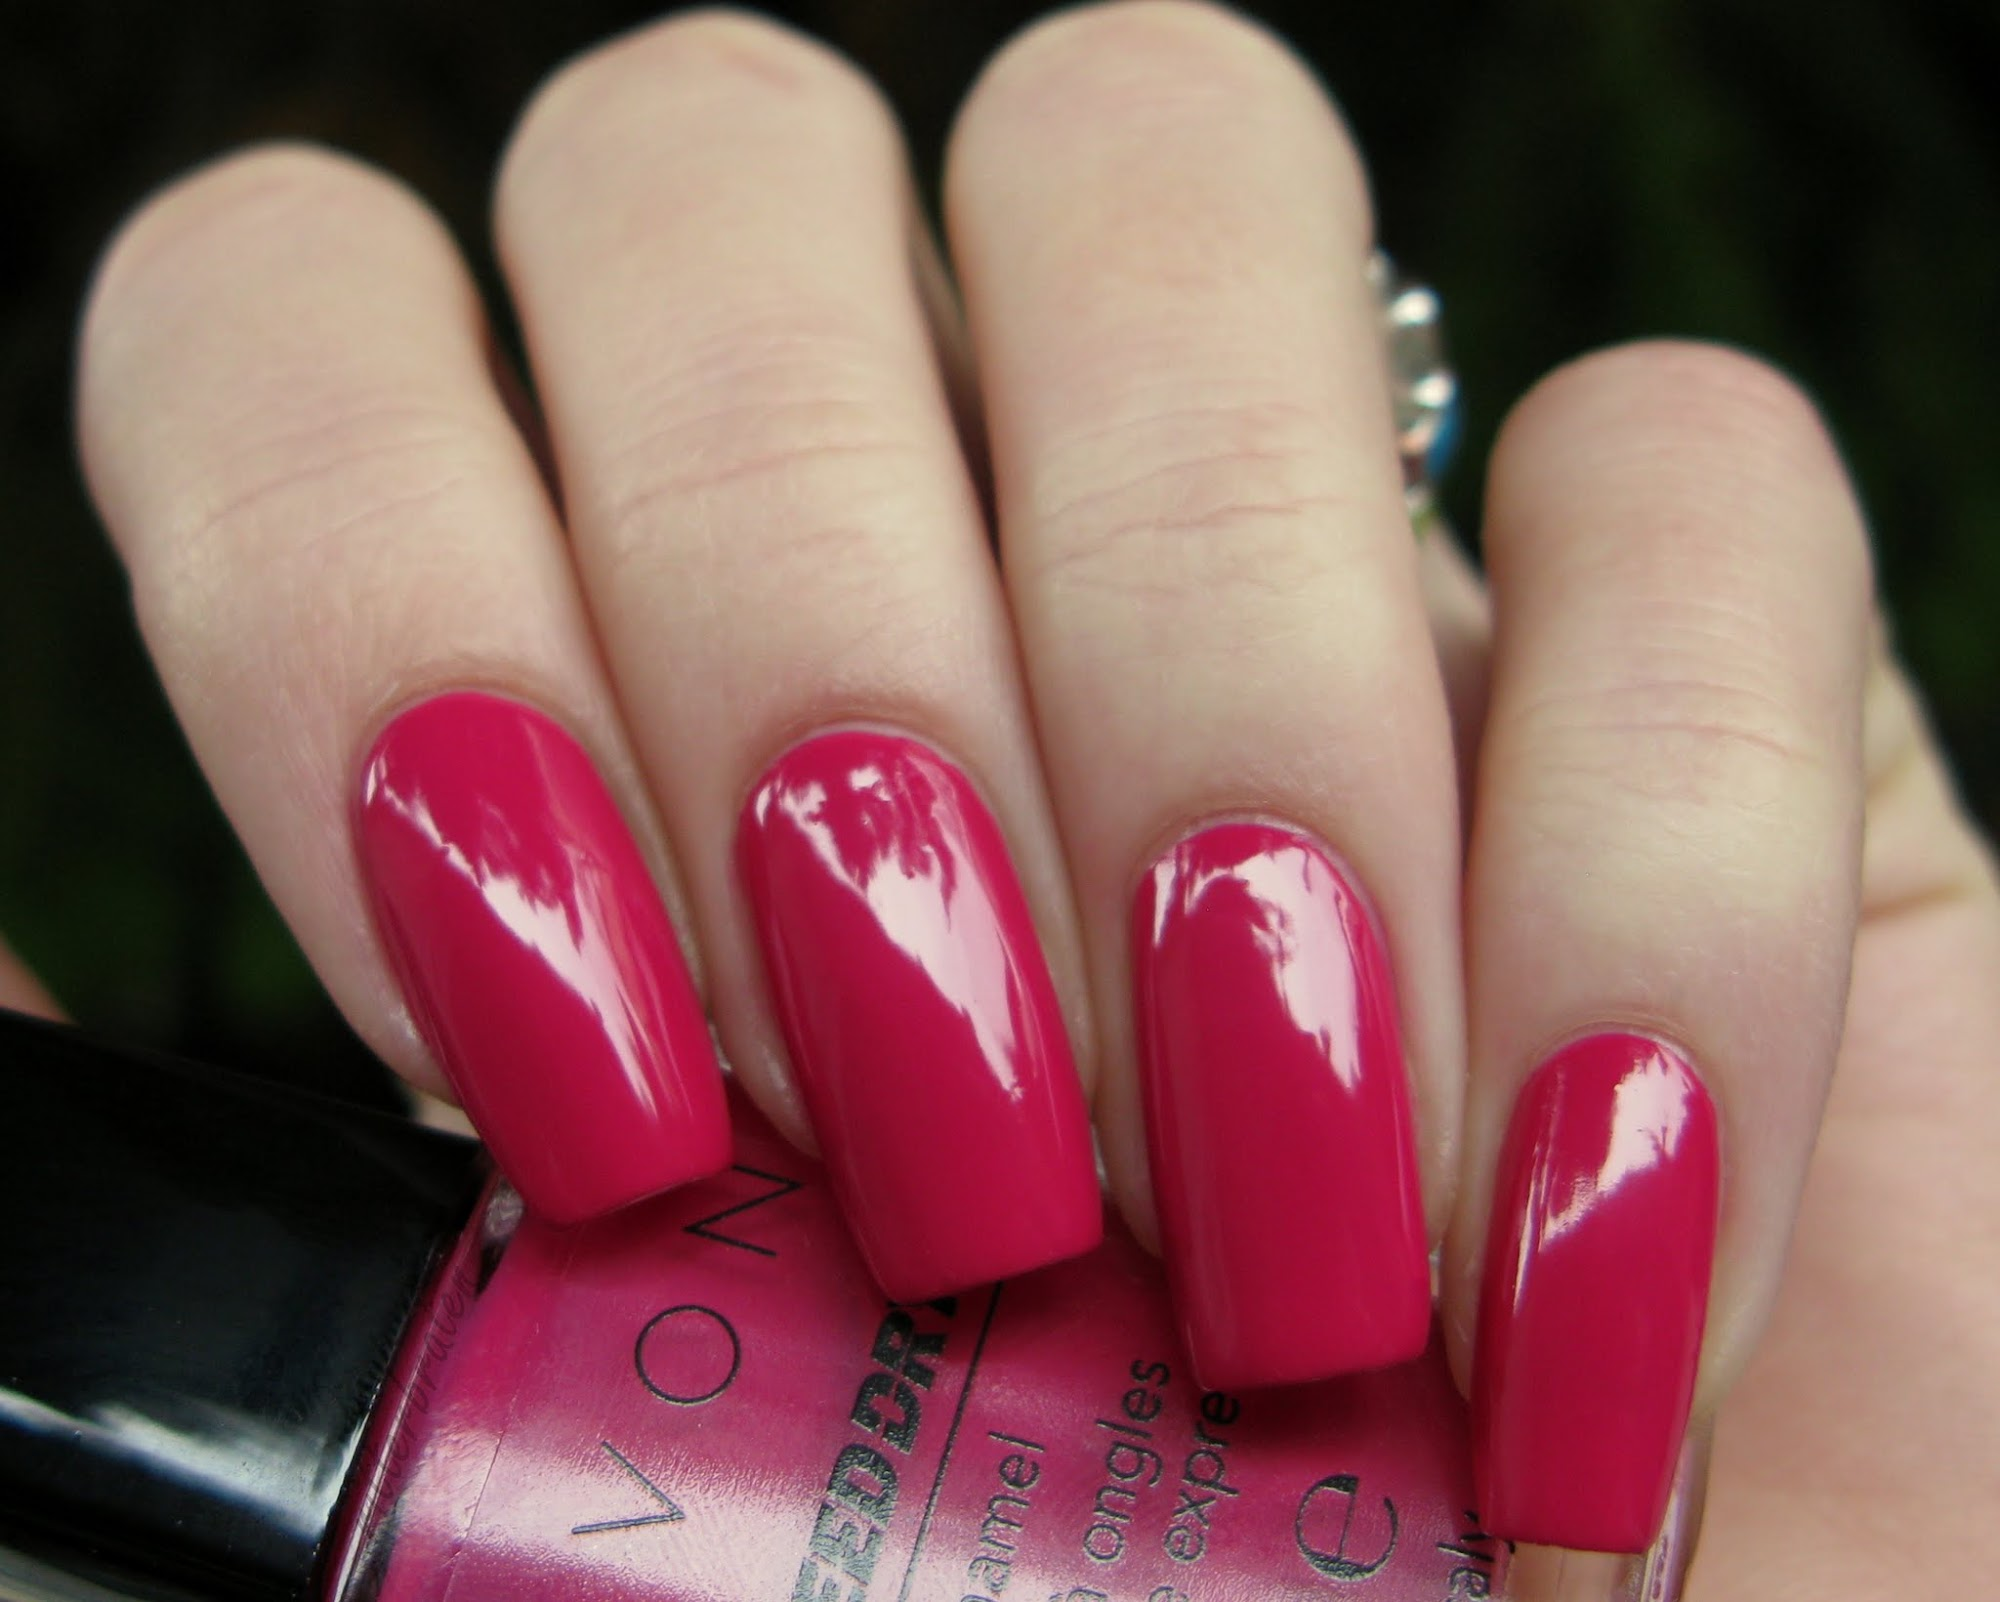 Avon Strawberry